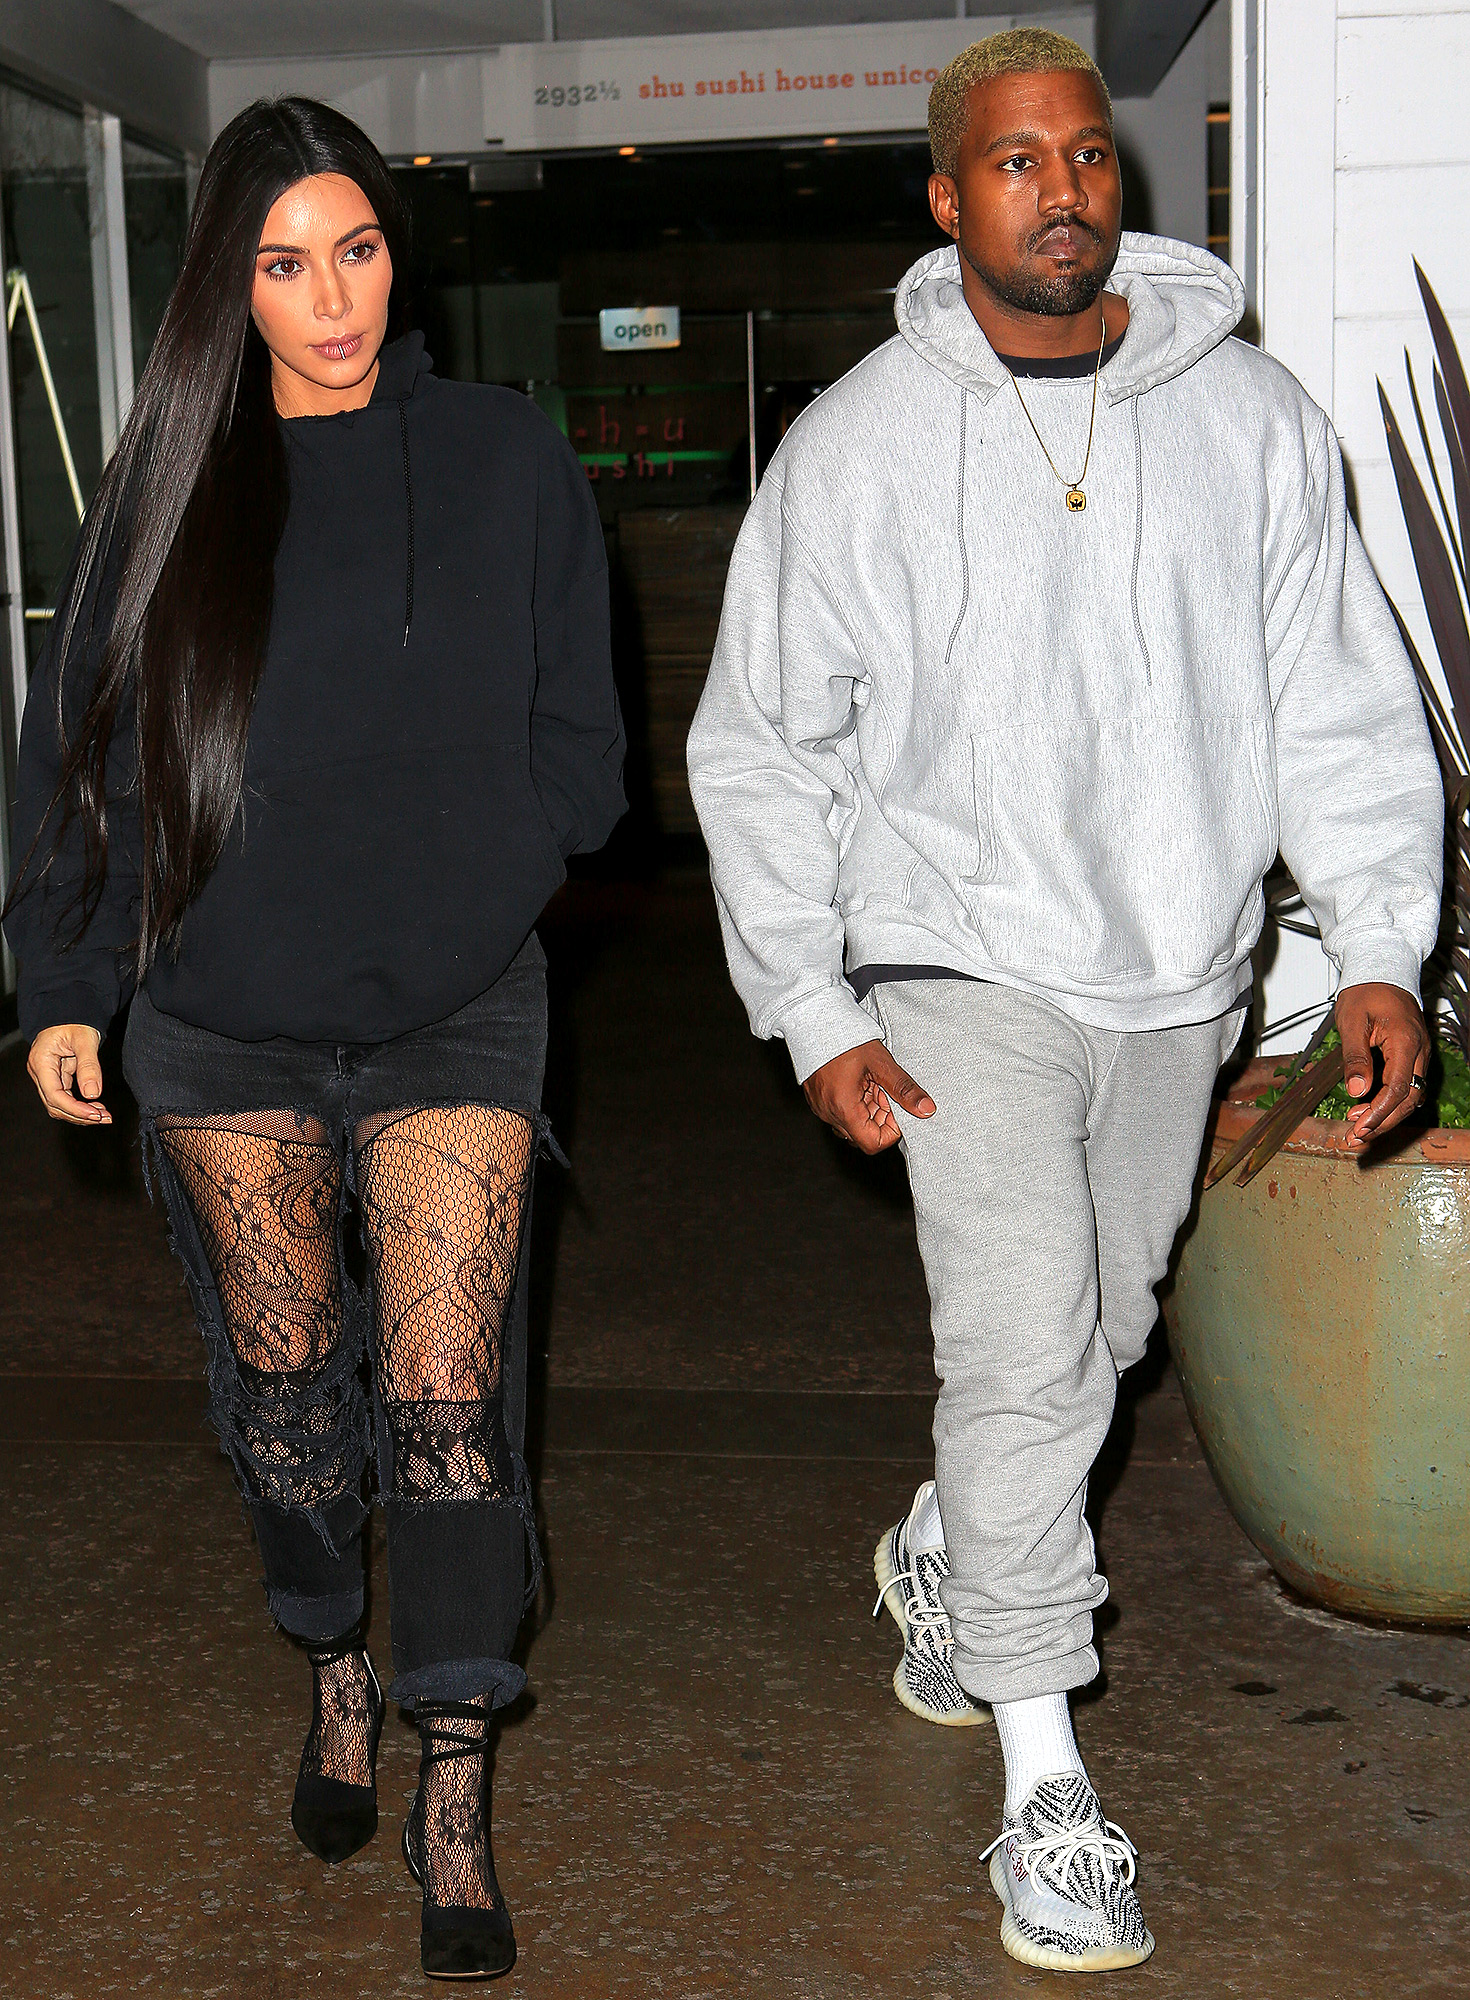 PREMIUM EXCLUSIVE Kim and Kanye celebrate at sushi restaurant after arrest of robbers in Paris